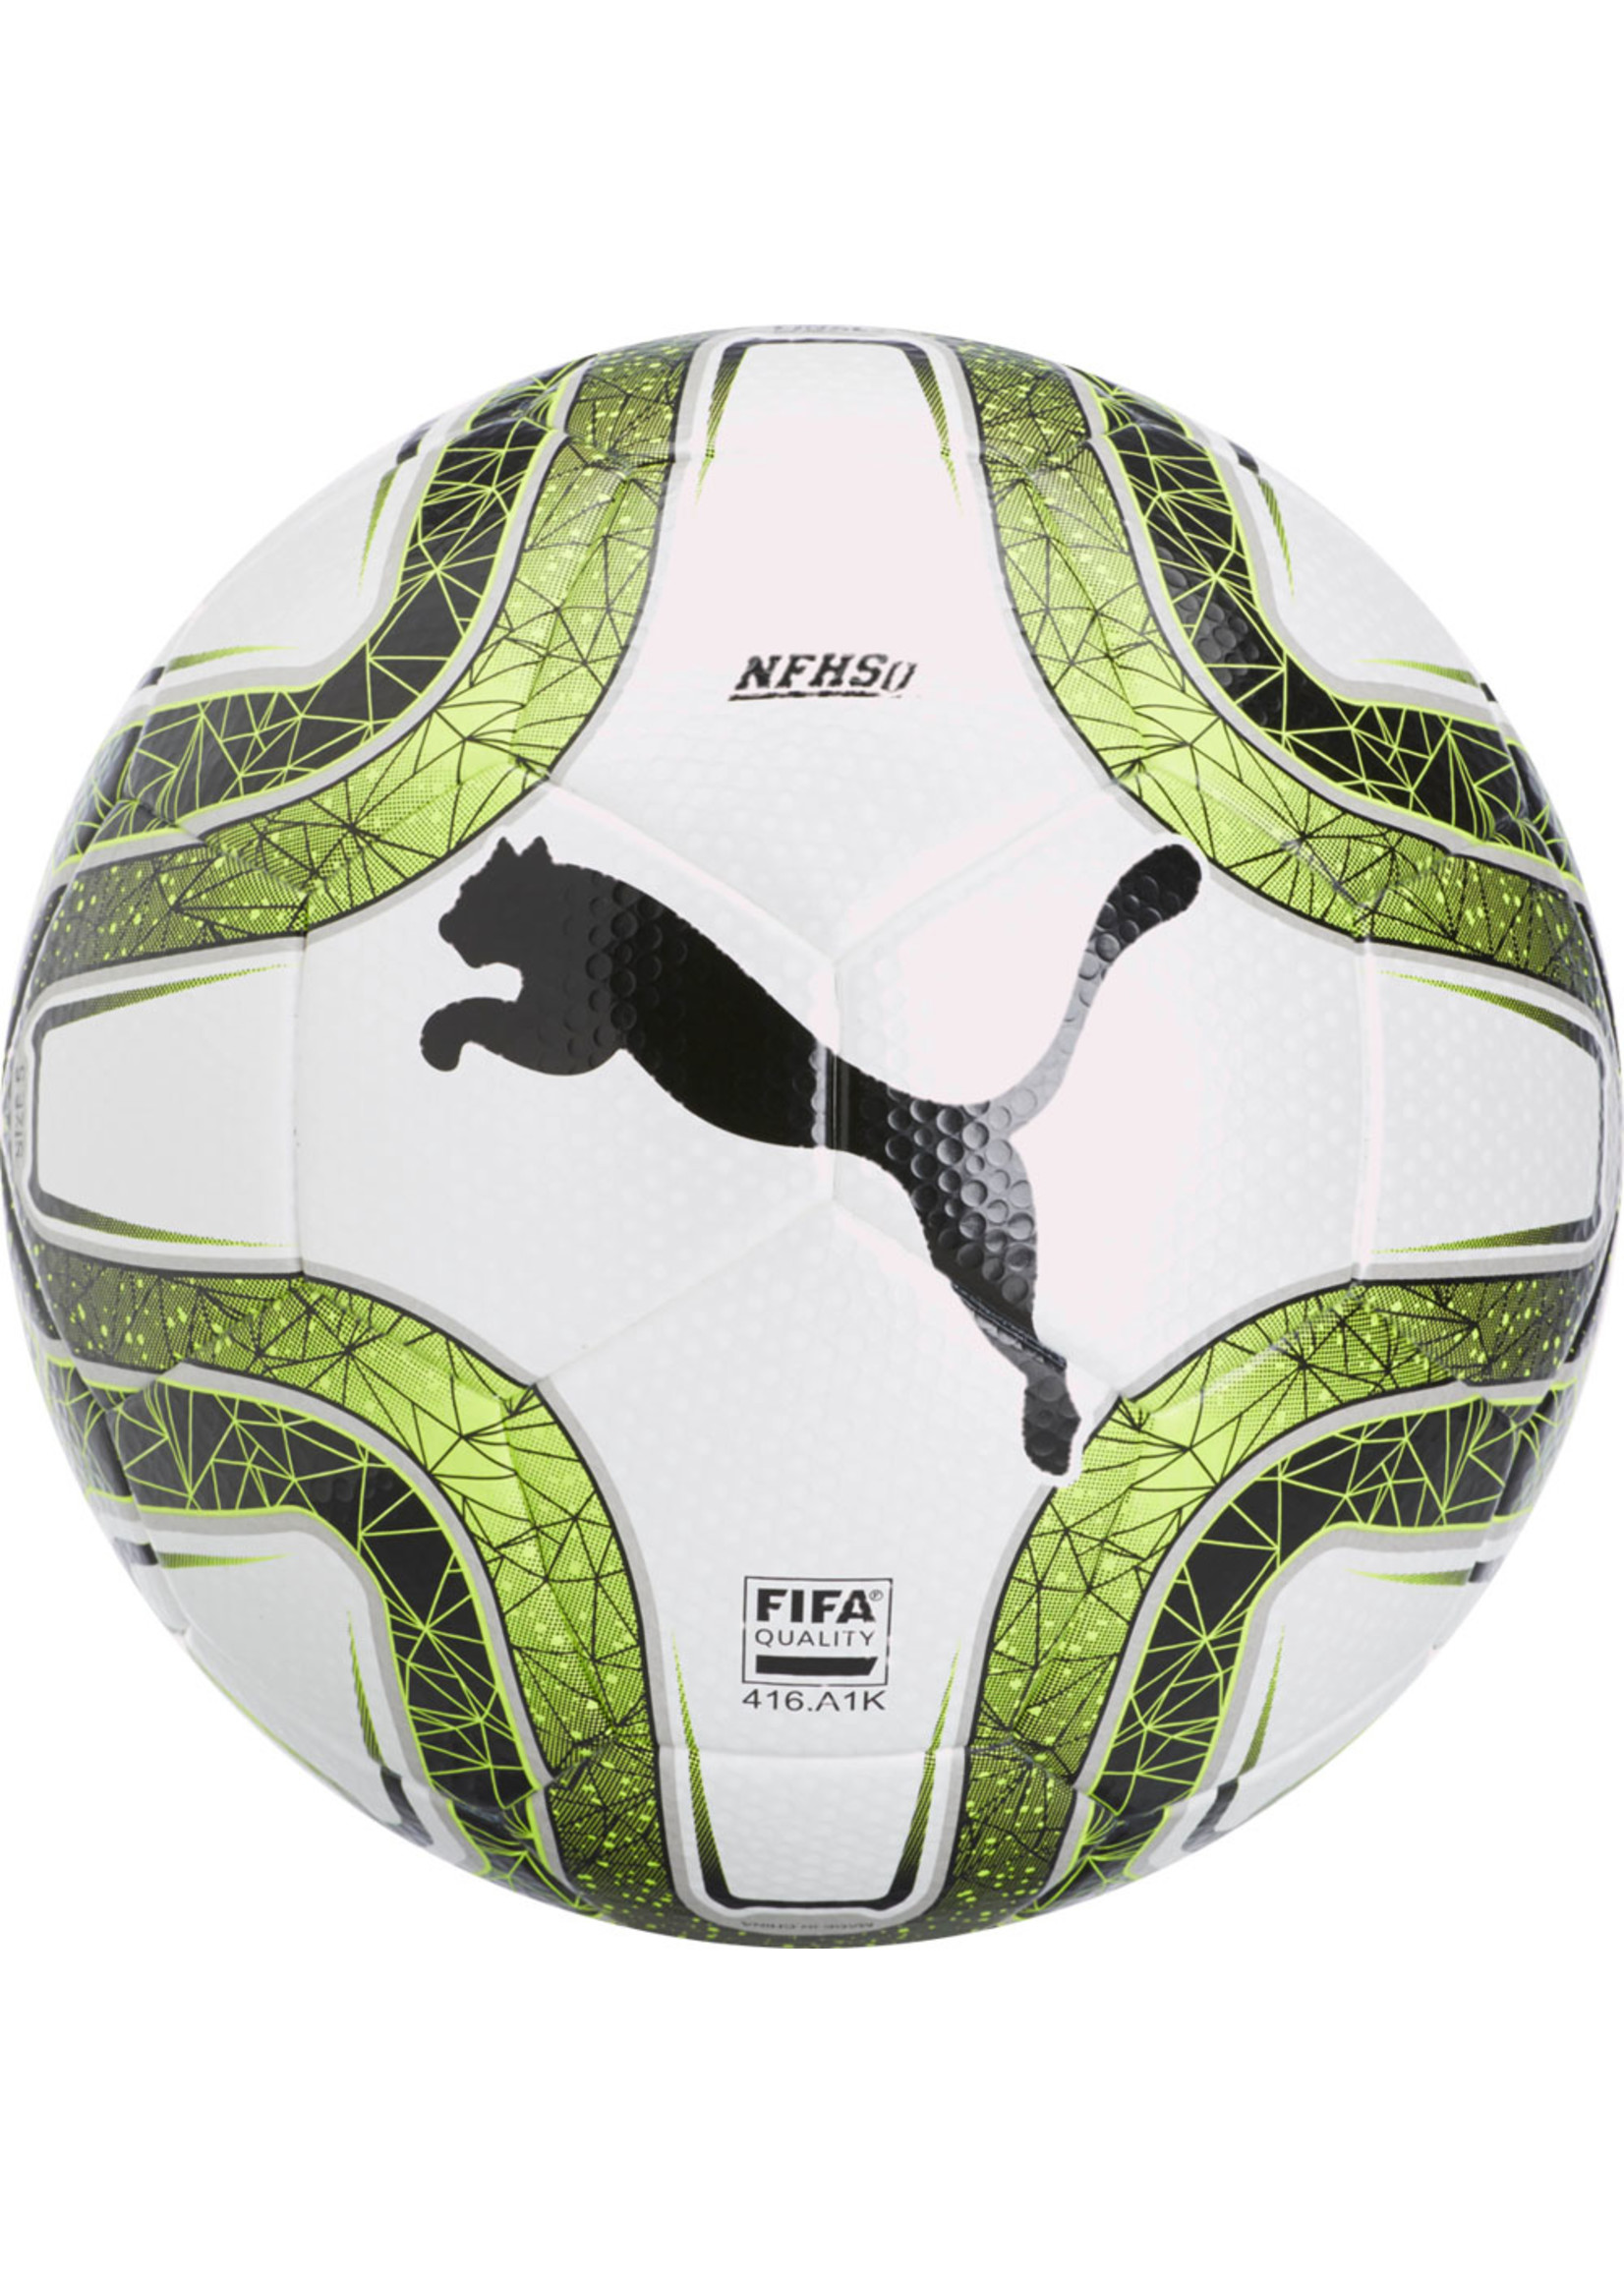 Puma Final 3 Tournament s4 FIFA Quality Ball